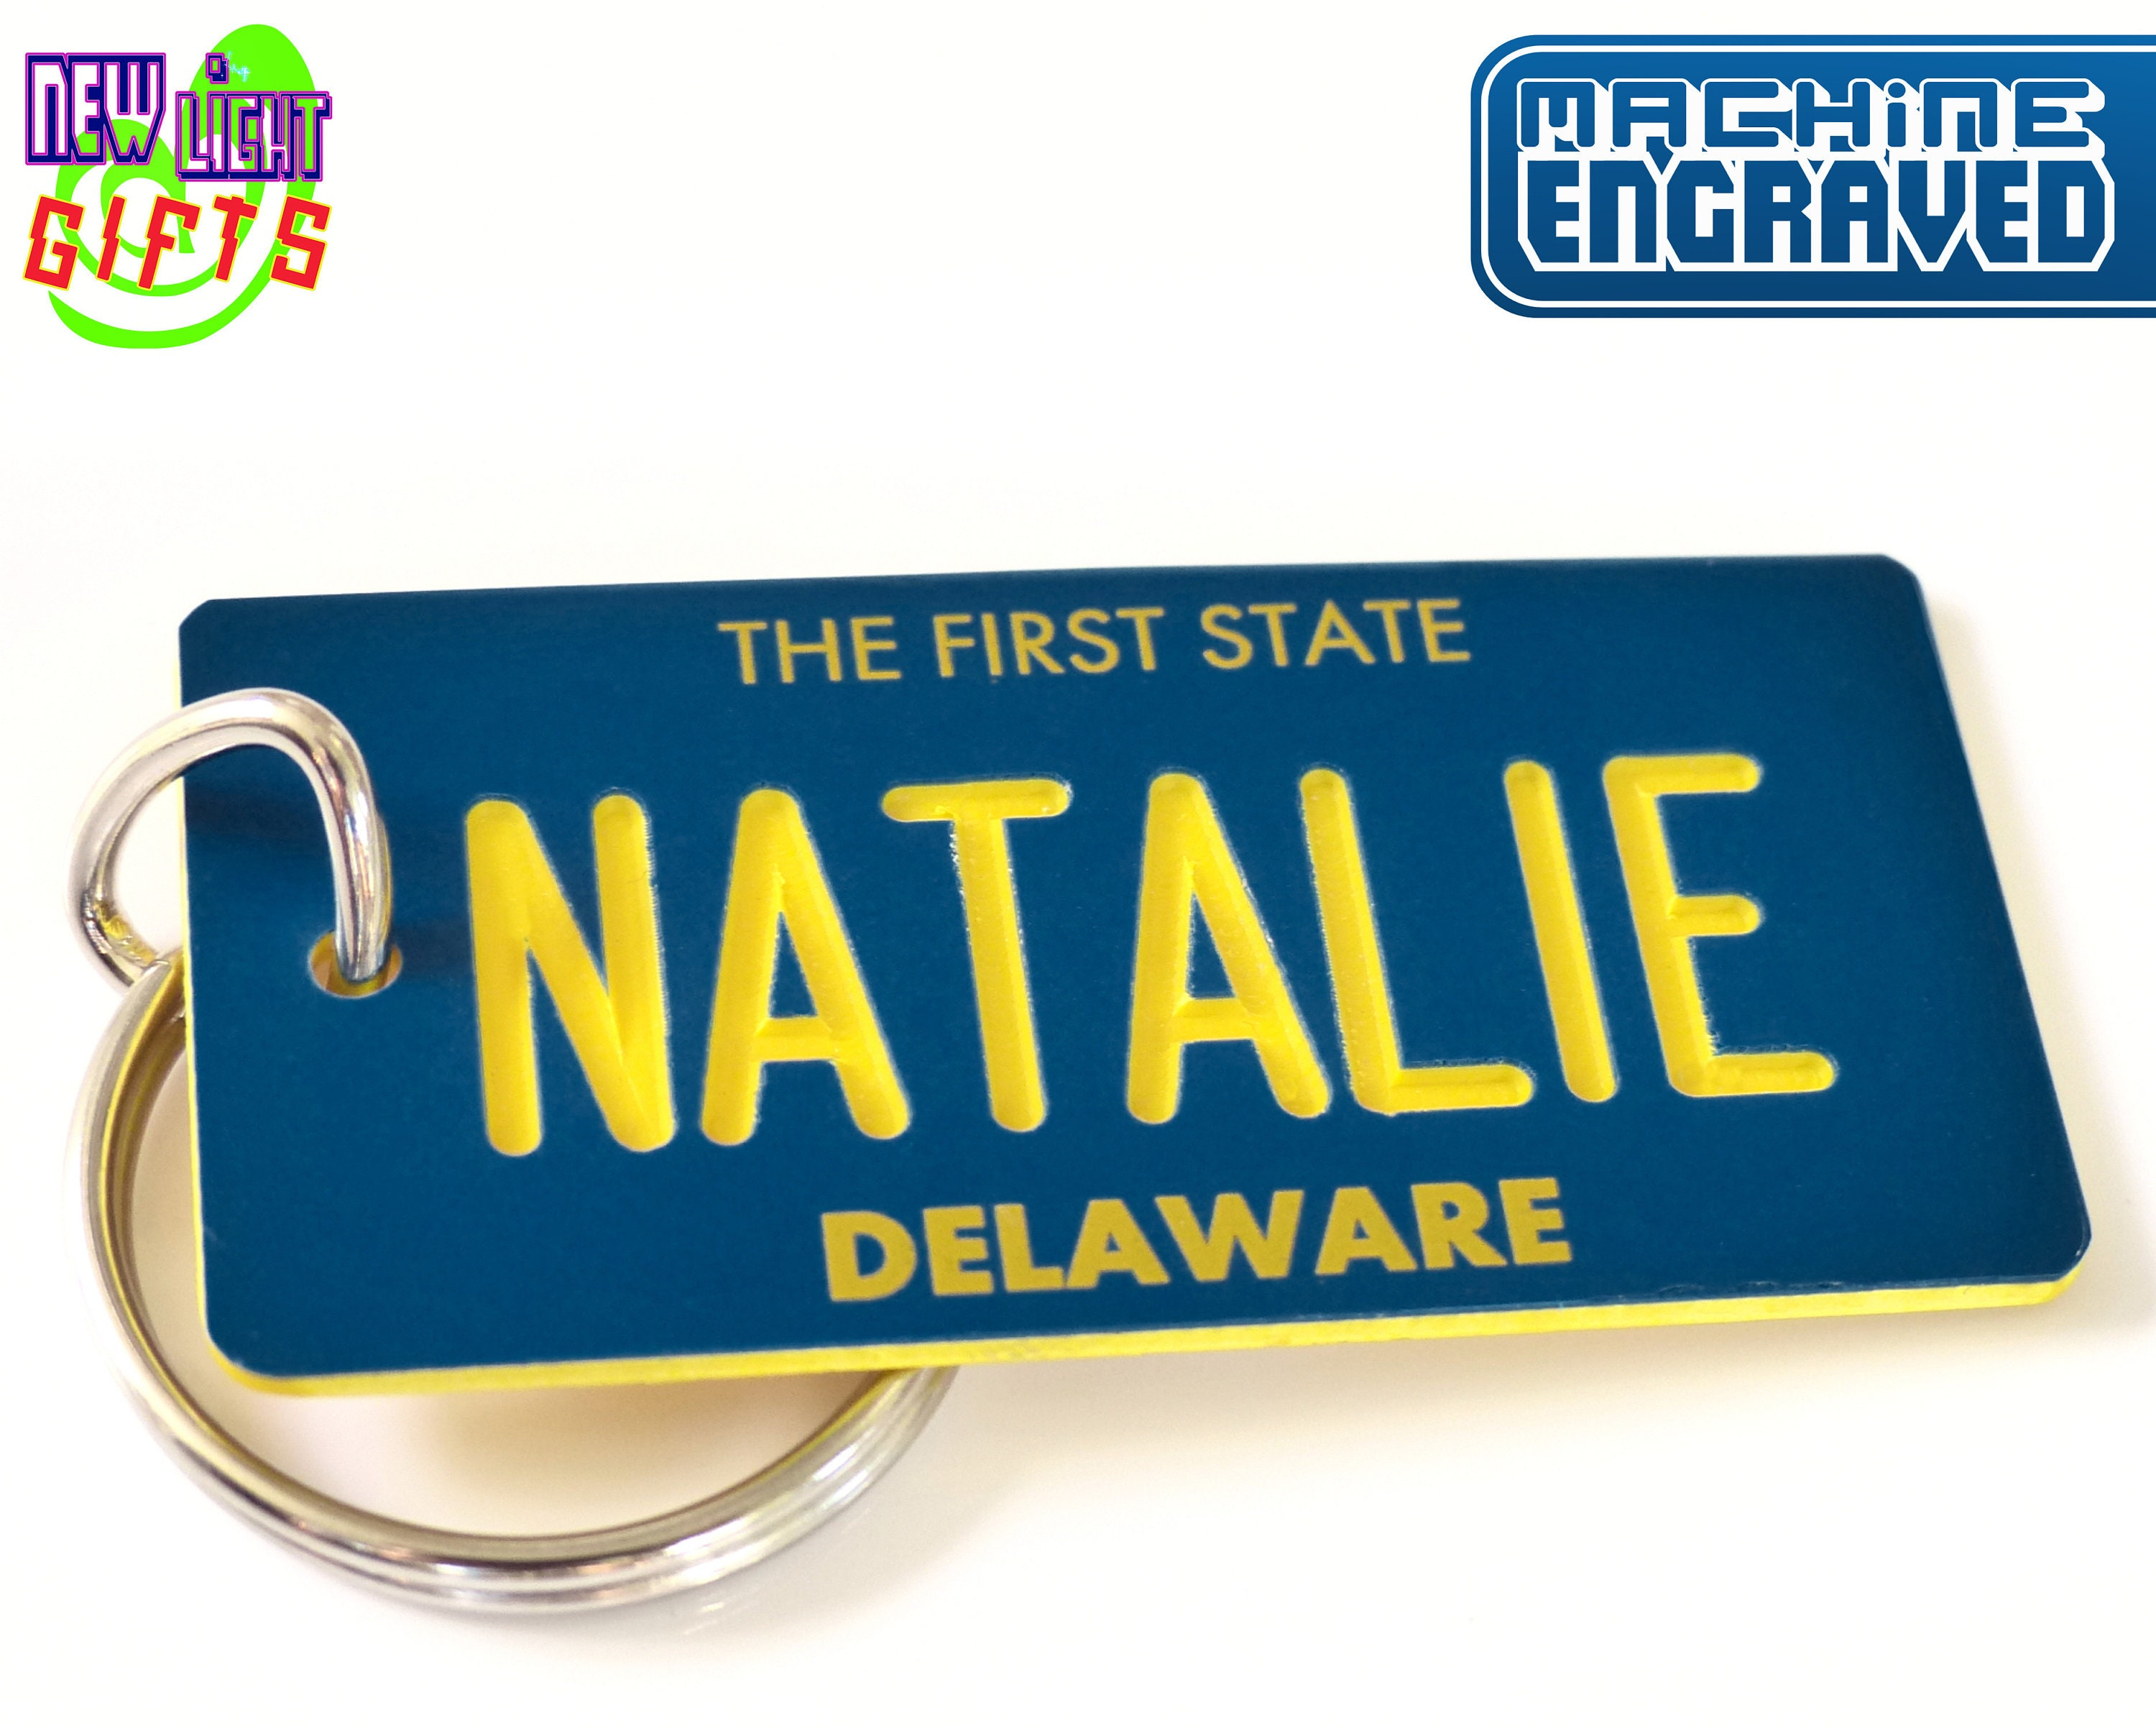 Amber Waves of Grain Personalized Indiana License Plate Engraved Keychain Any Name Made to Order Key ring Key Tag